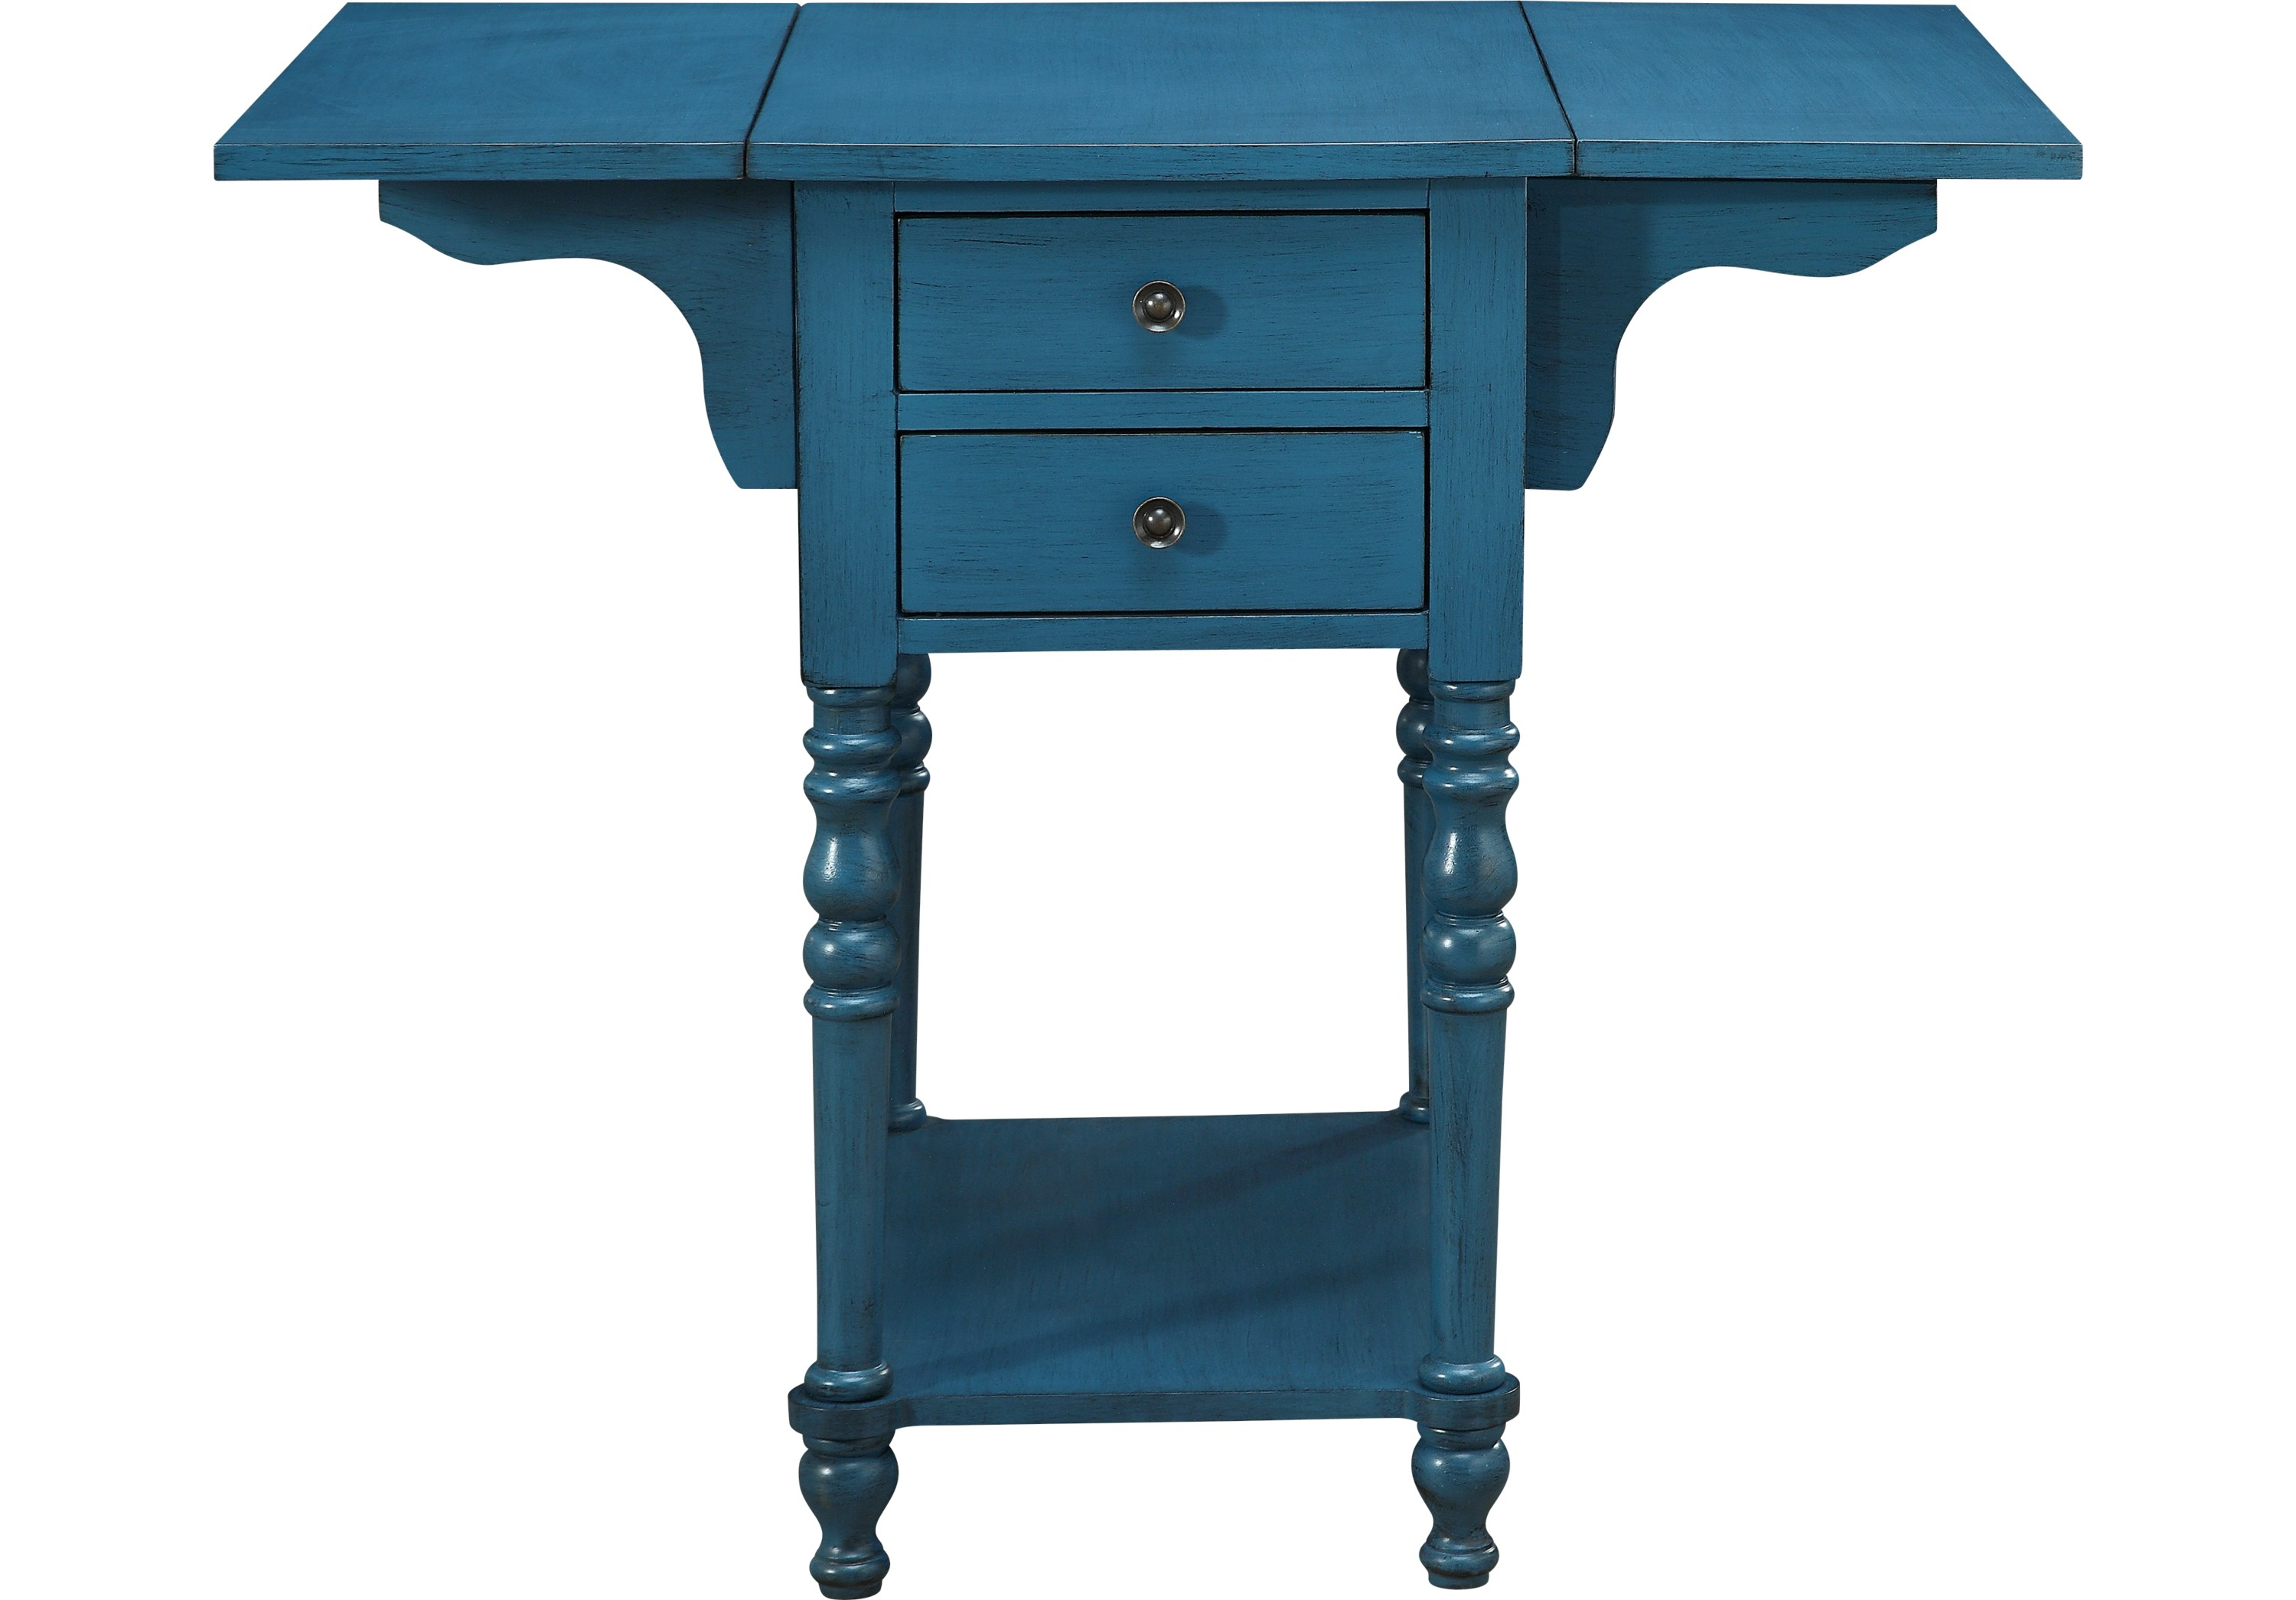 darcell blue accent table tables colors aqua product chair cushions pine desk work light inch nightstand room essentials silver drum side art deco lighting black razer ouroboros